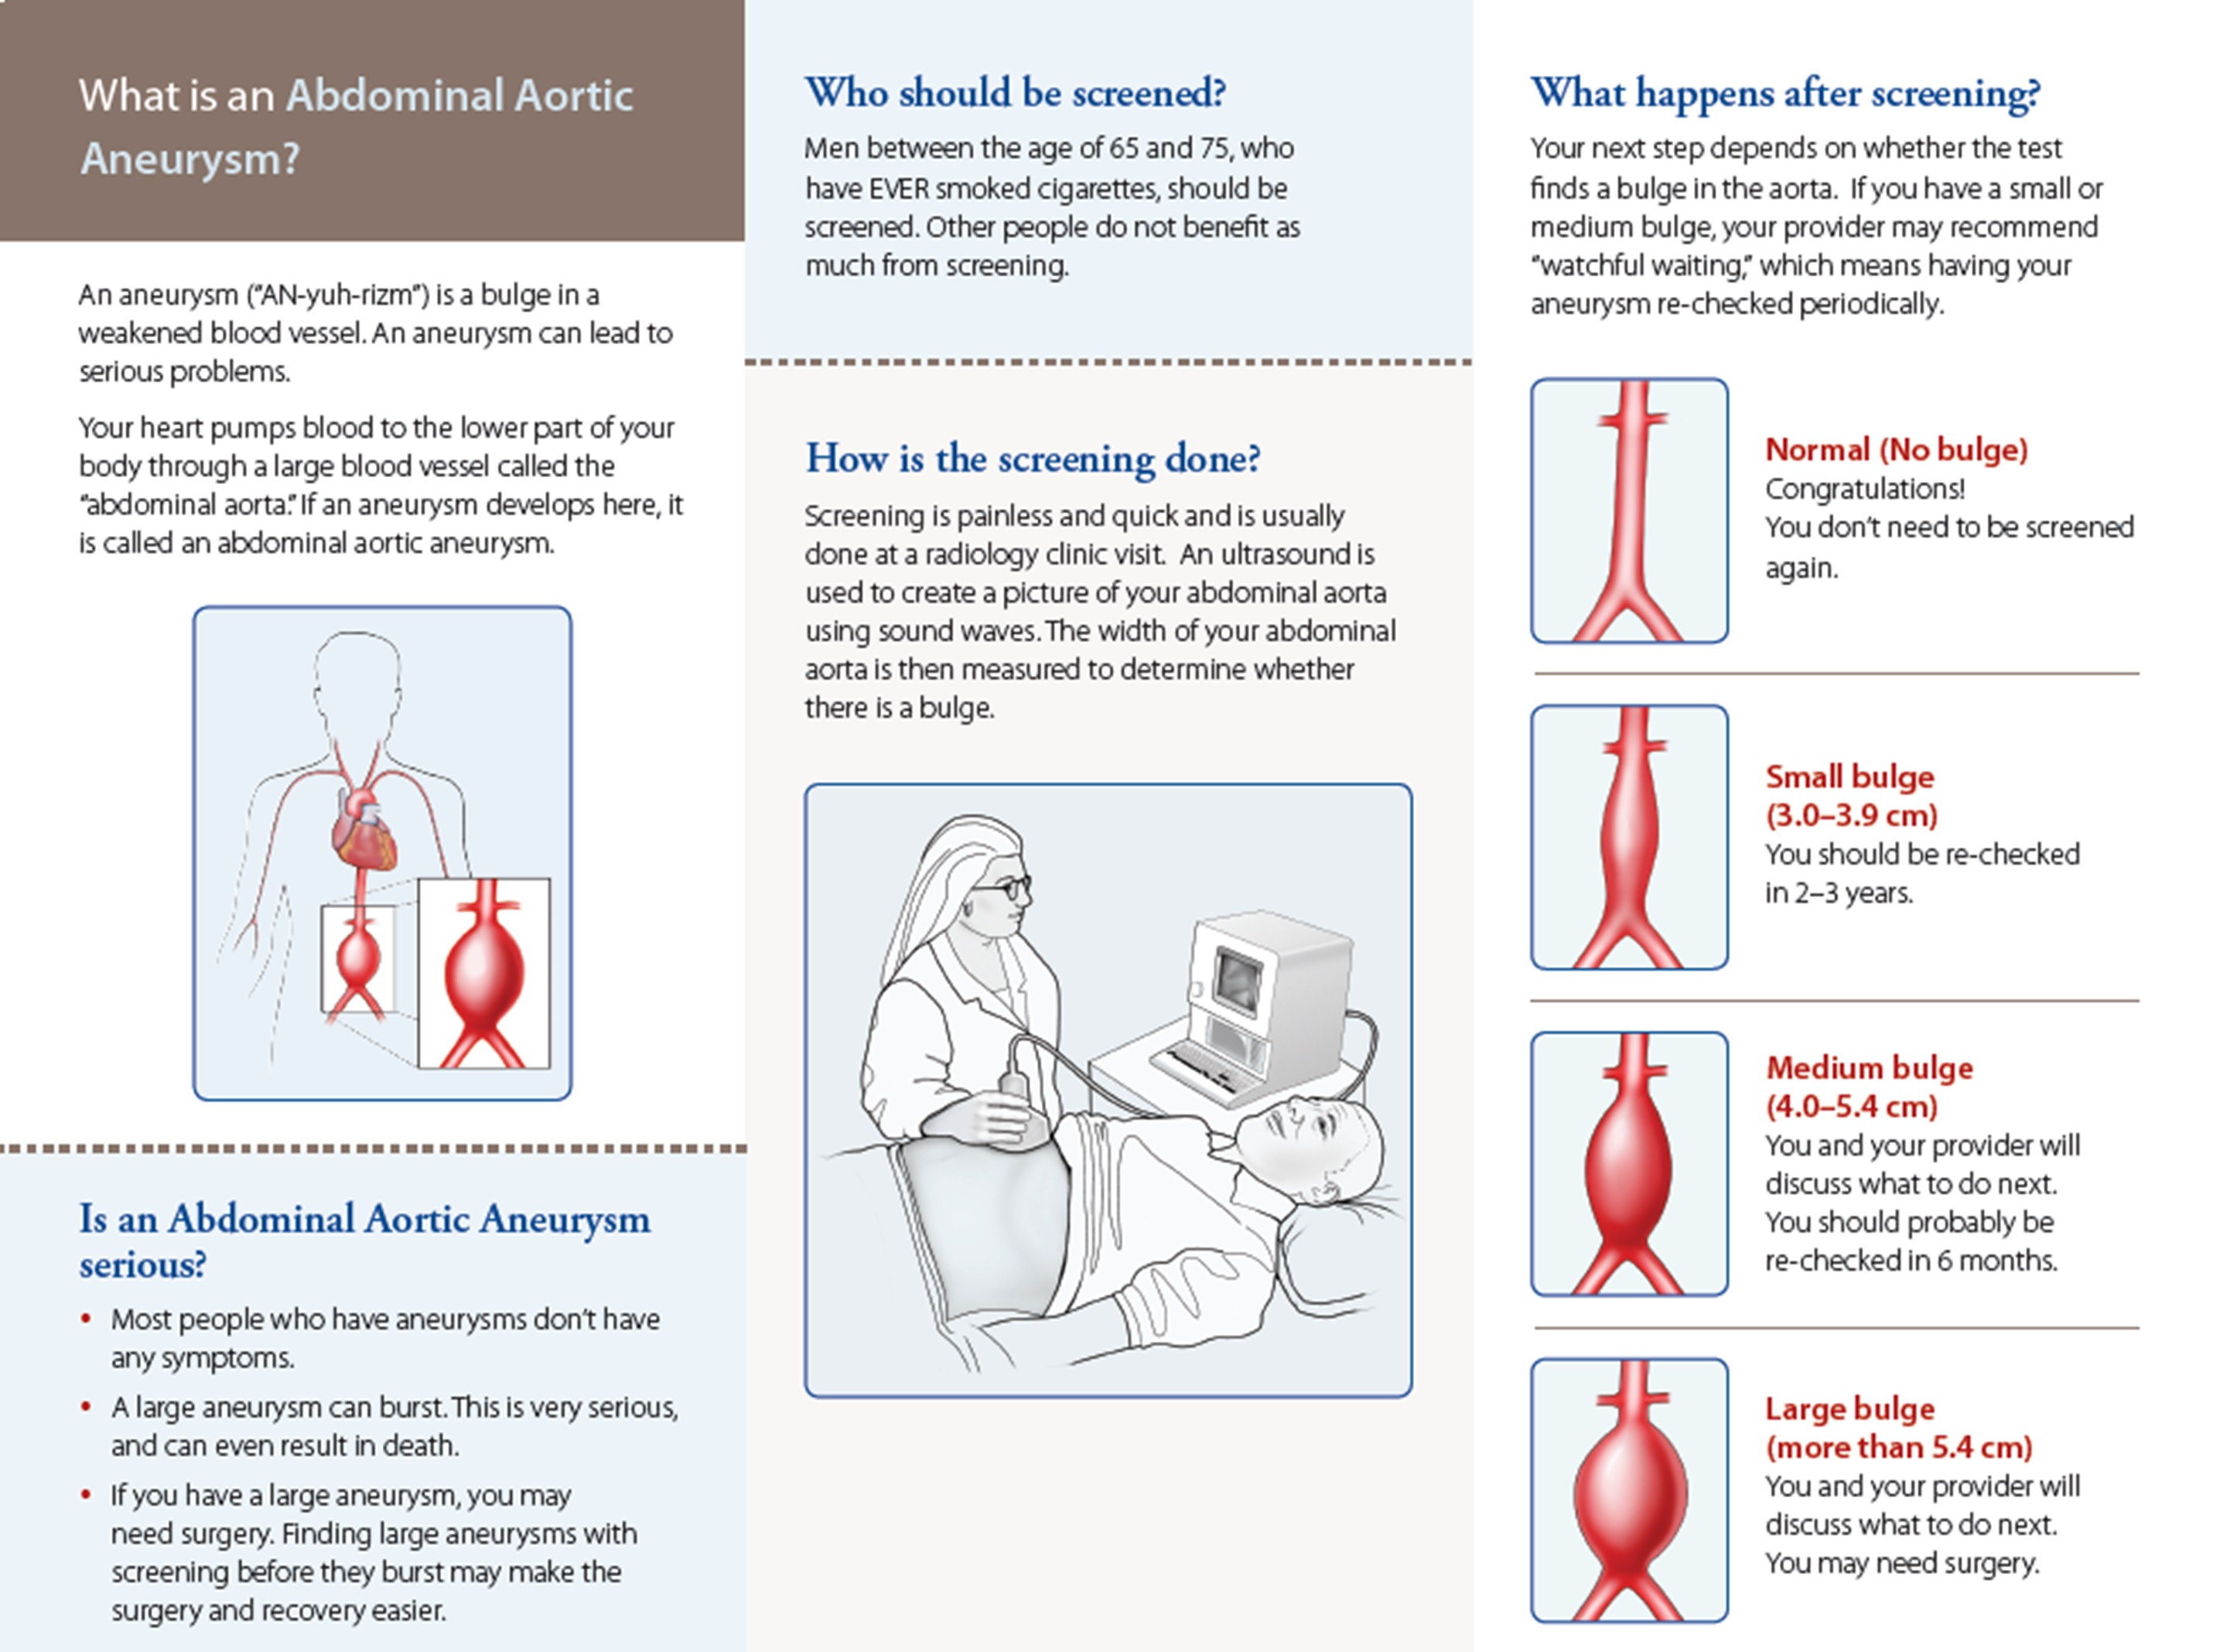 A Diagram Of An Abdominal Aortic Aneurysm How Screening Is Done And What Happens After